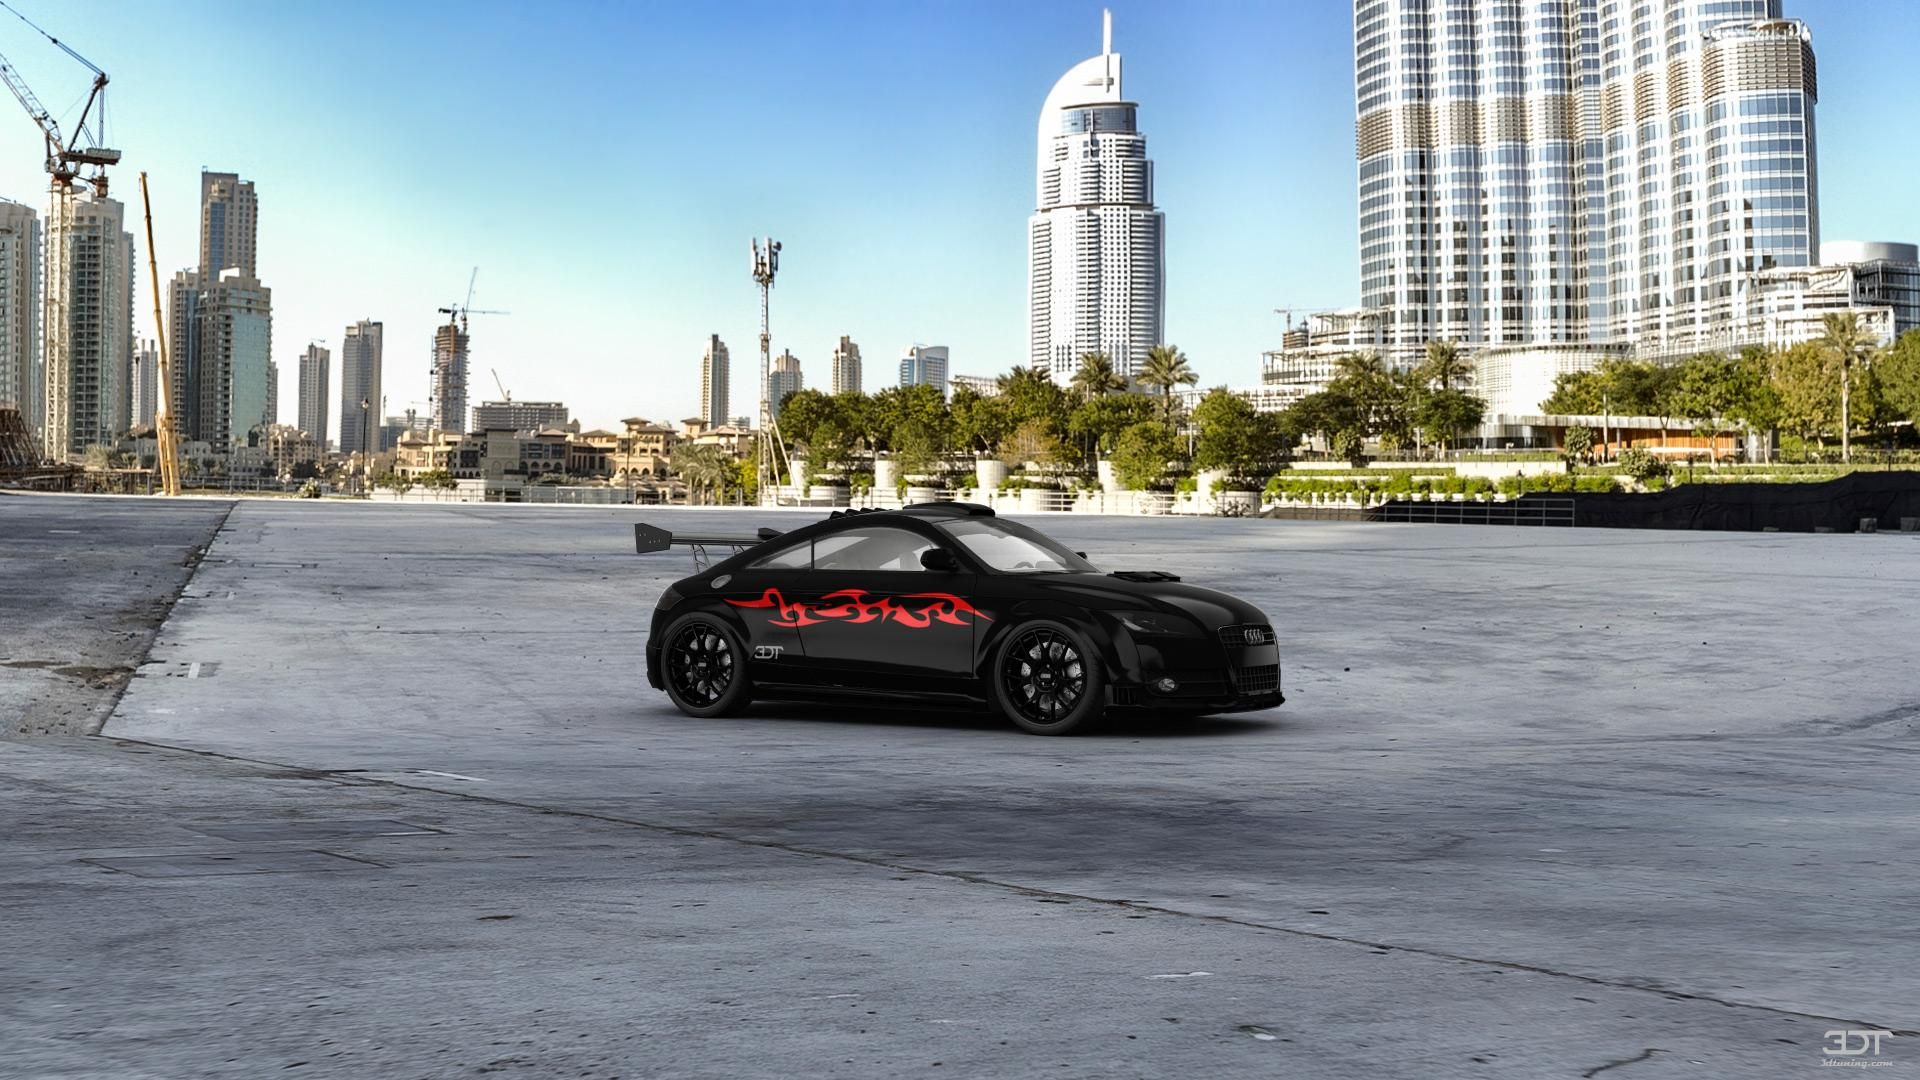 Checkout my tuning 2010 at 3DTuning